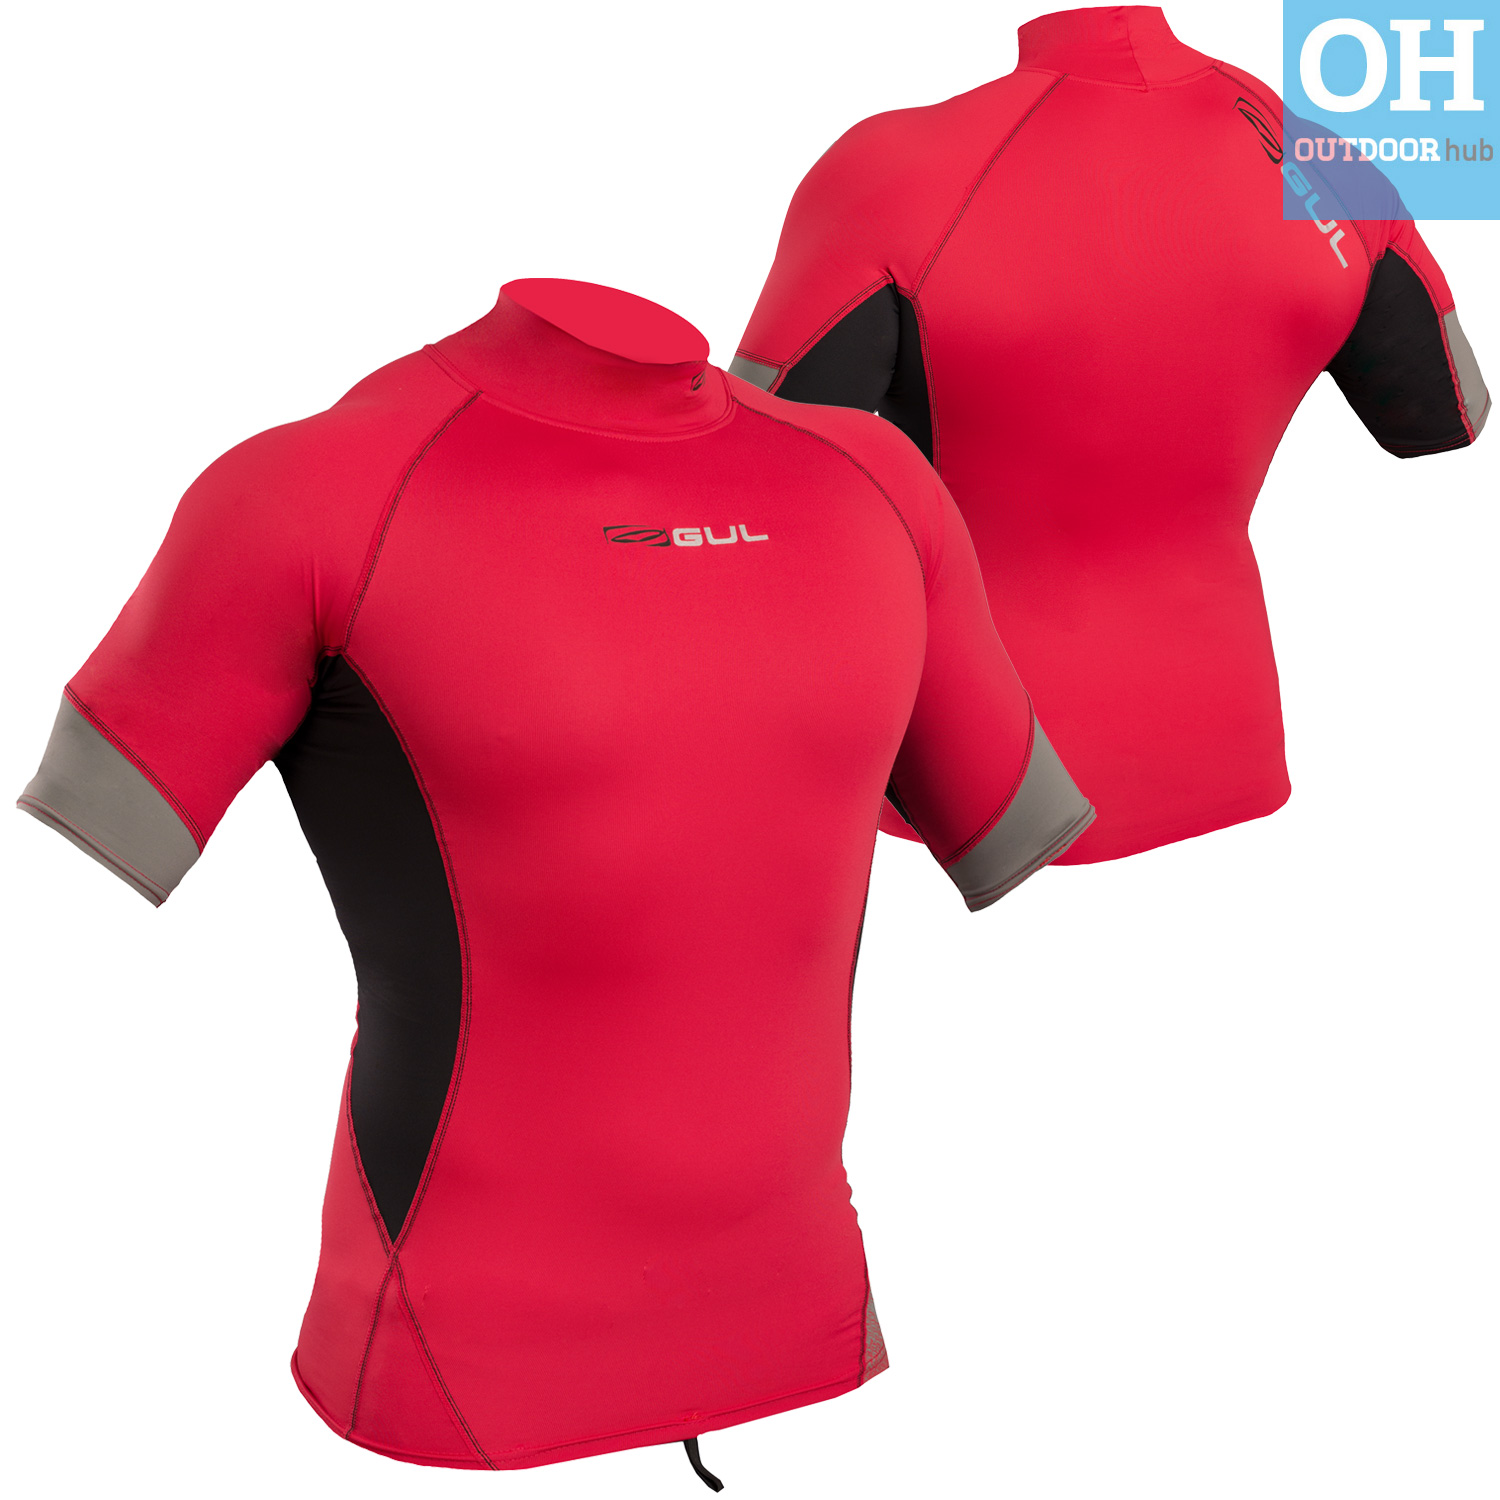 Gul-Xola-Mens-Short-Sleeve-Rash-Guard-Vest-Wetsuit-Top-UV-50-Surf-Swim-Dive thumbnail 35